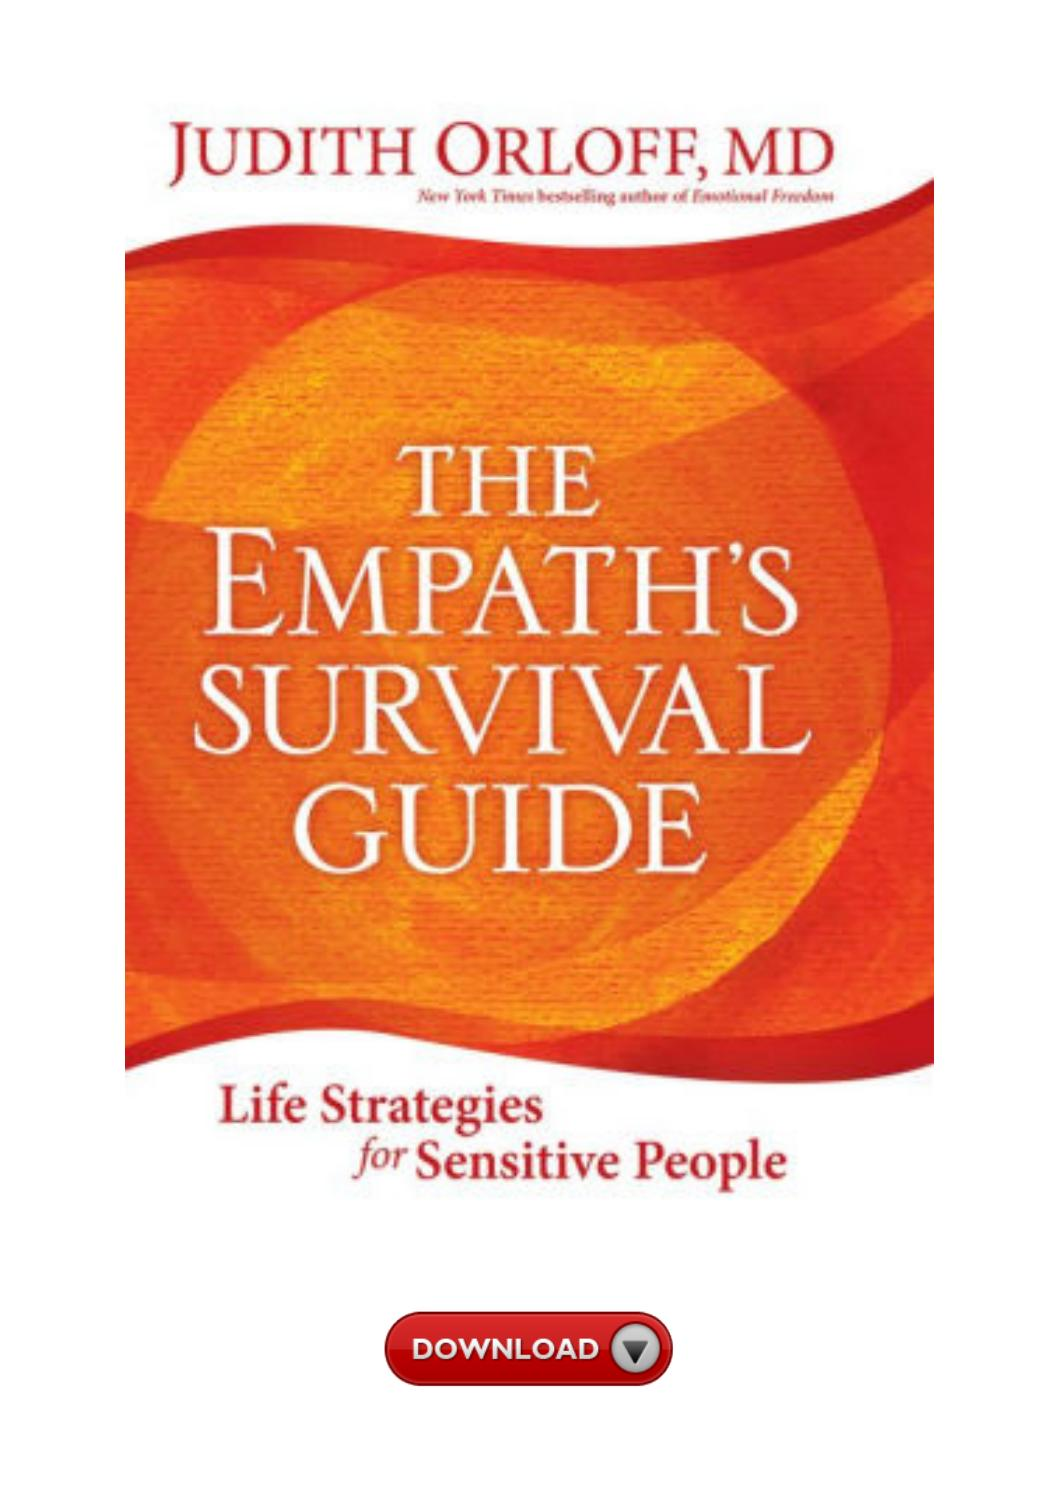 Epub Download The Empath S Survival Guide Life Strategies For Sensitive People By Martha Mcdonald1973 Issuu